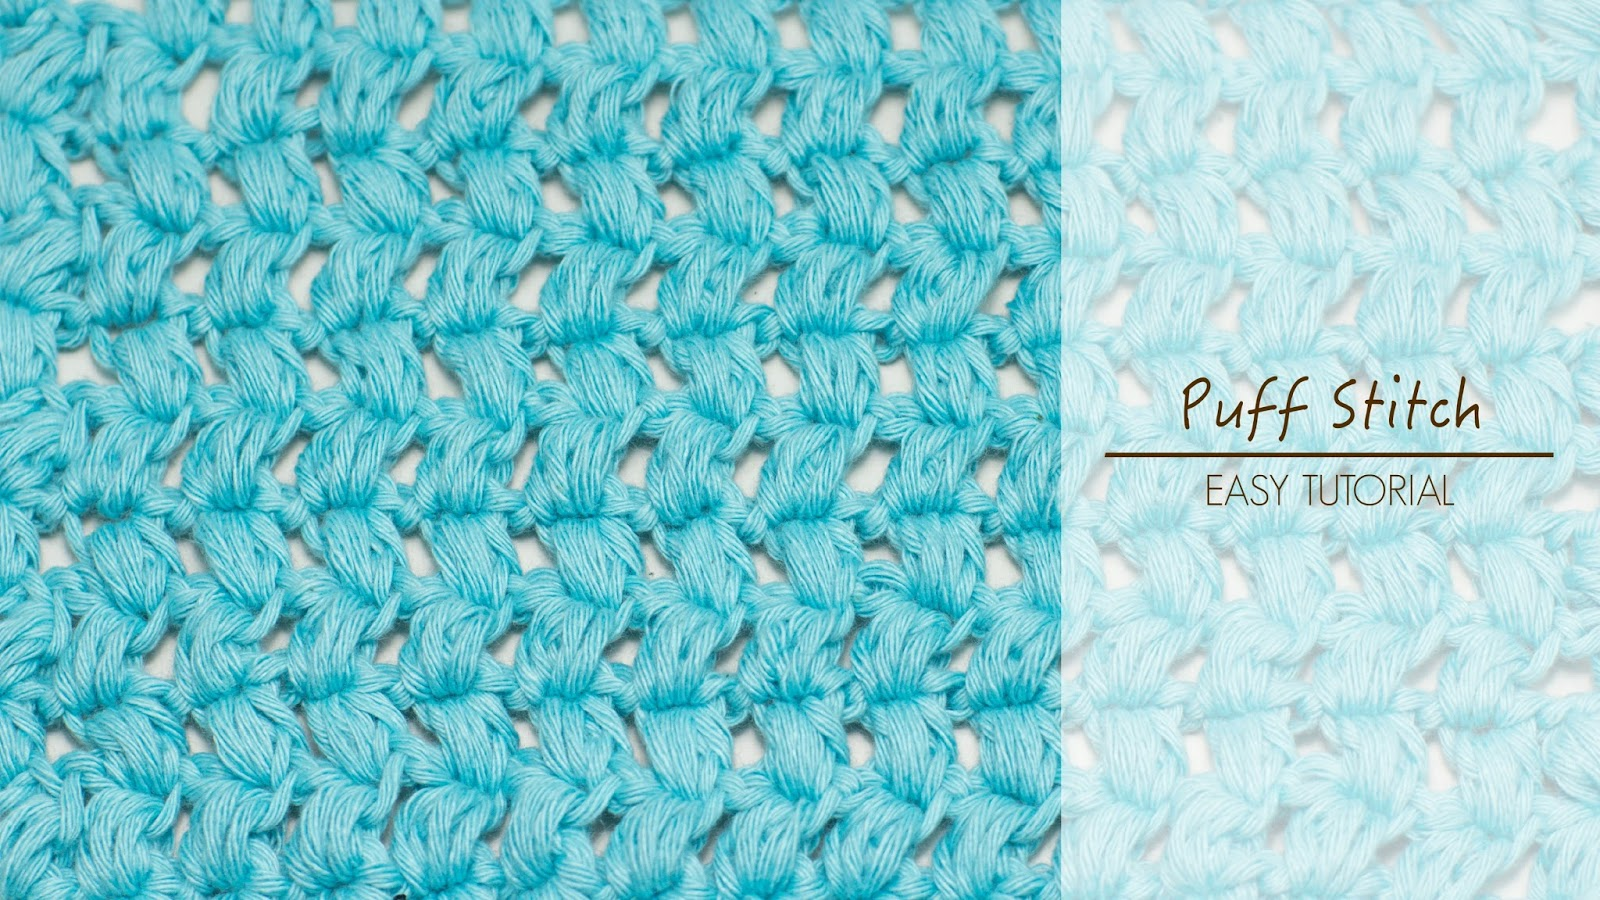 Crochet Stitches Video Puff : Hopeful Honey Craft, Crochet, Create: How To: Crochet A Puff Stitch